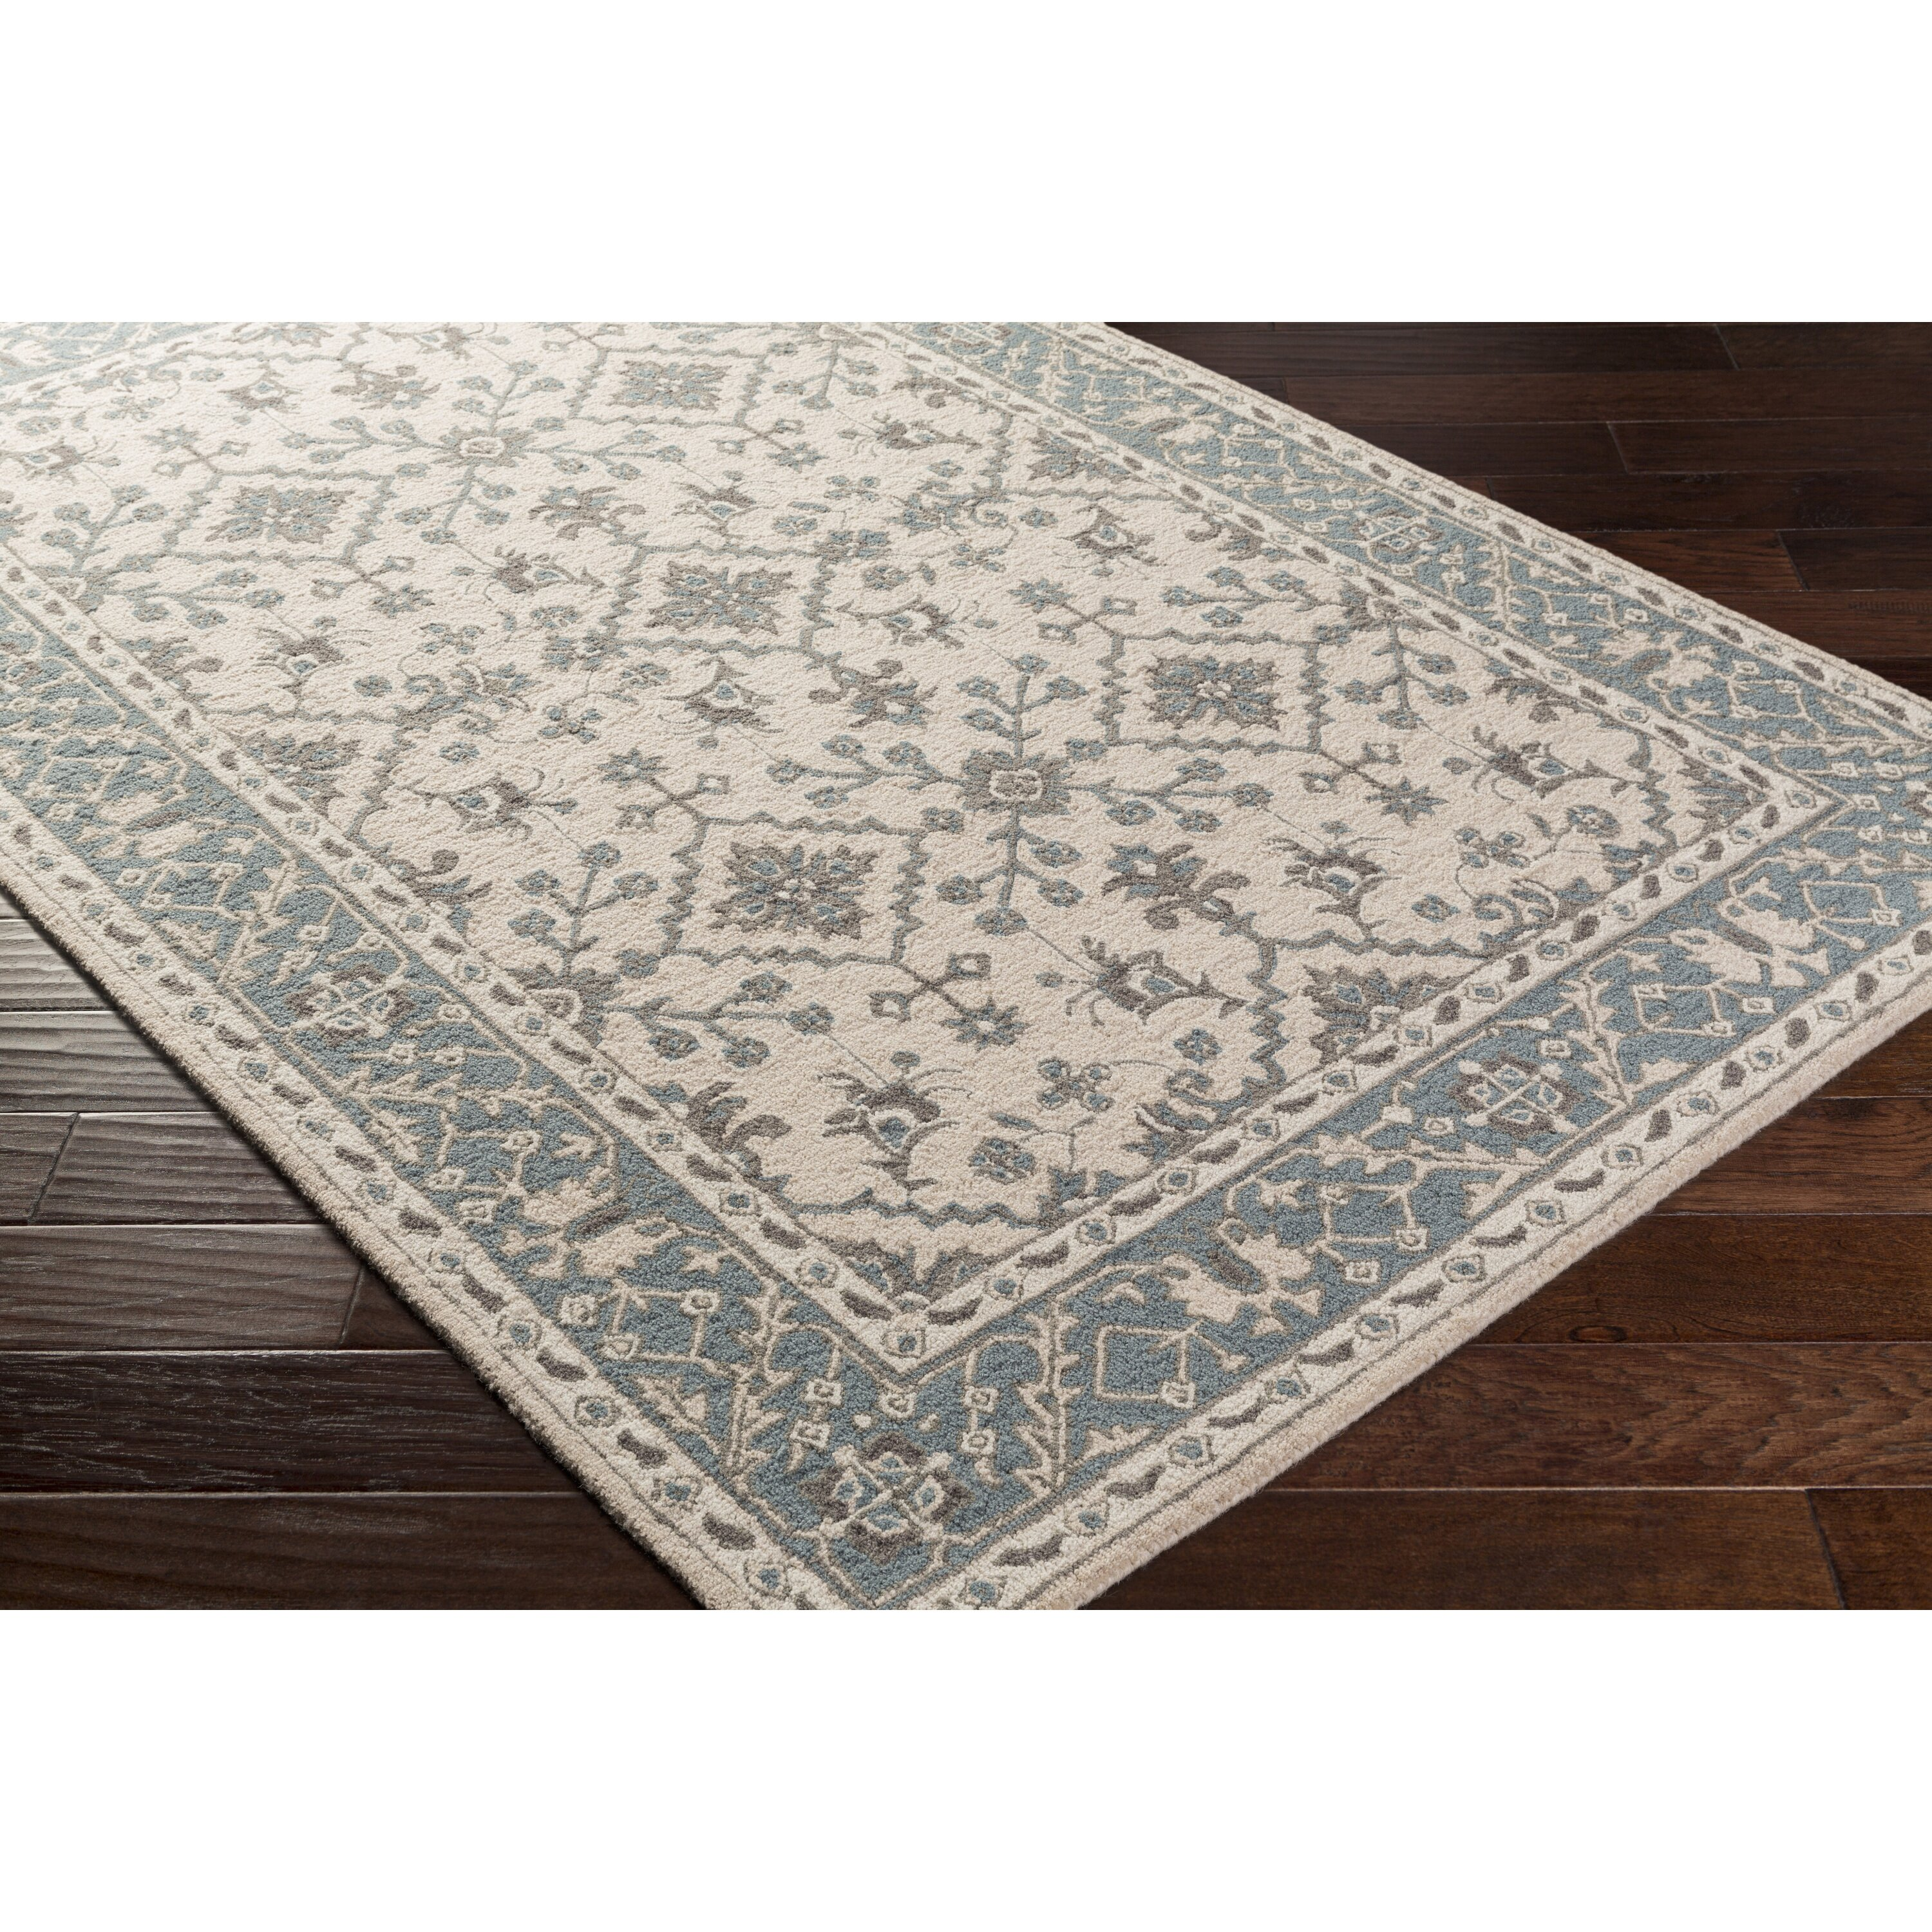 Pottershill Hand-Tufted Beige/Teal Area Rug